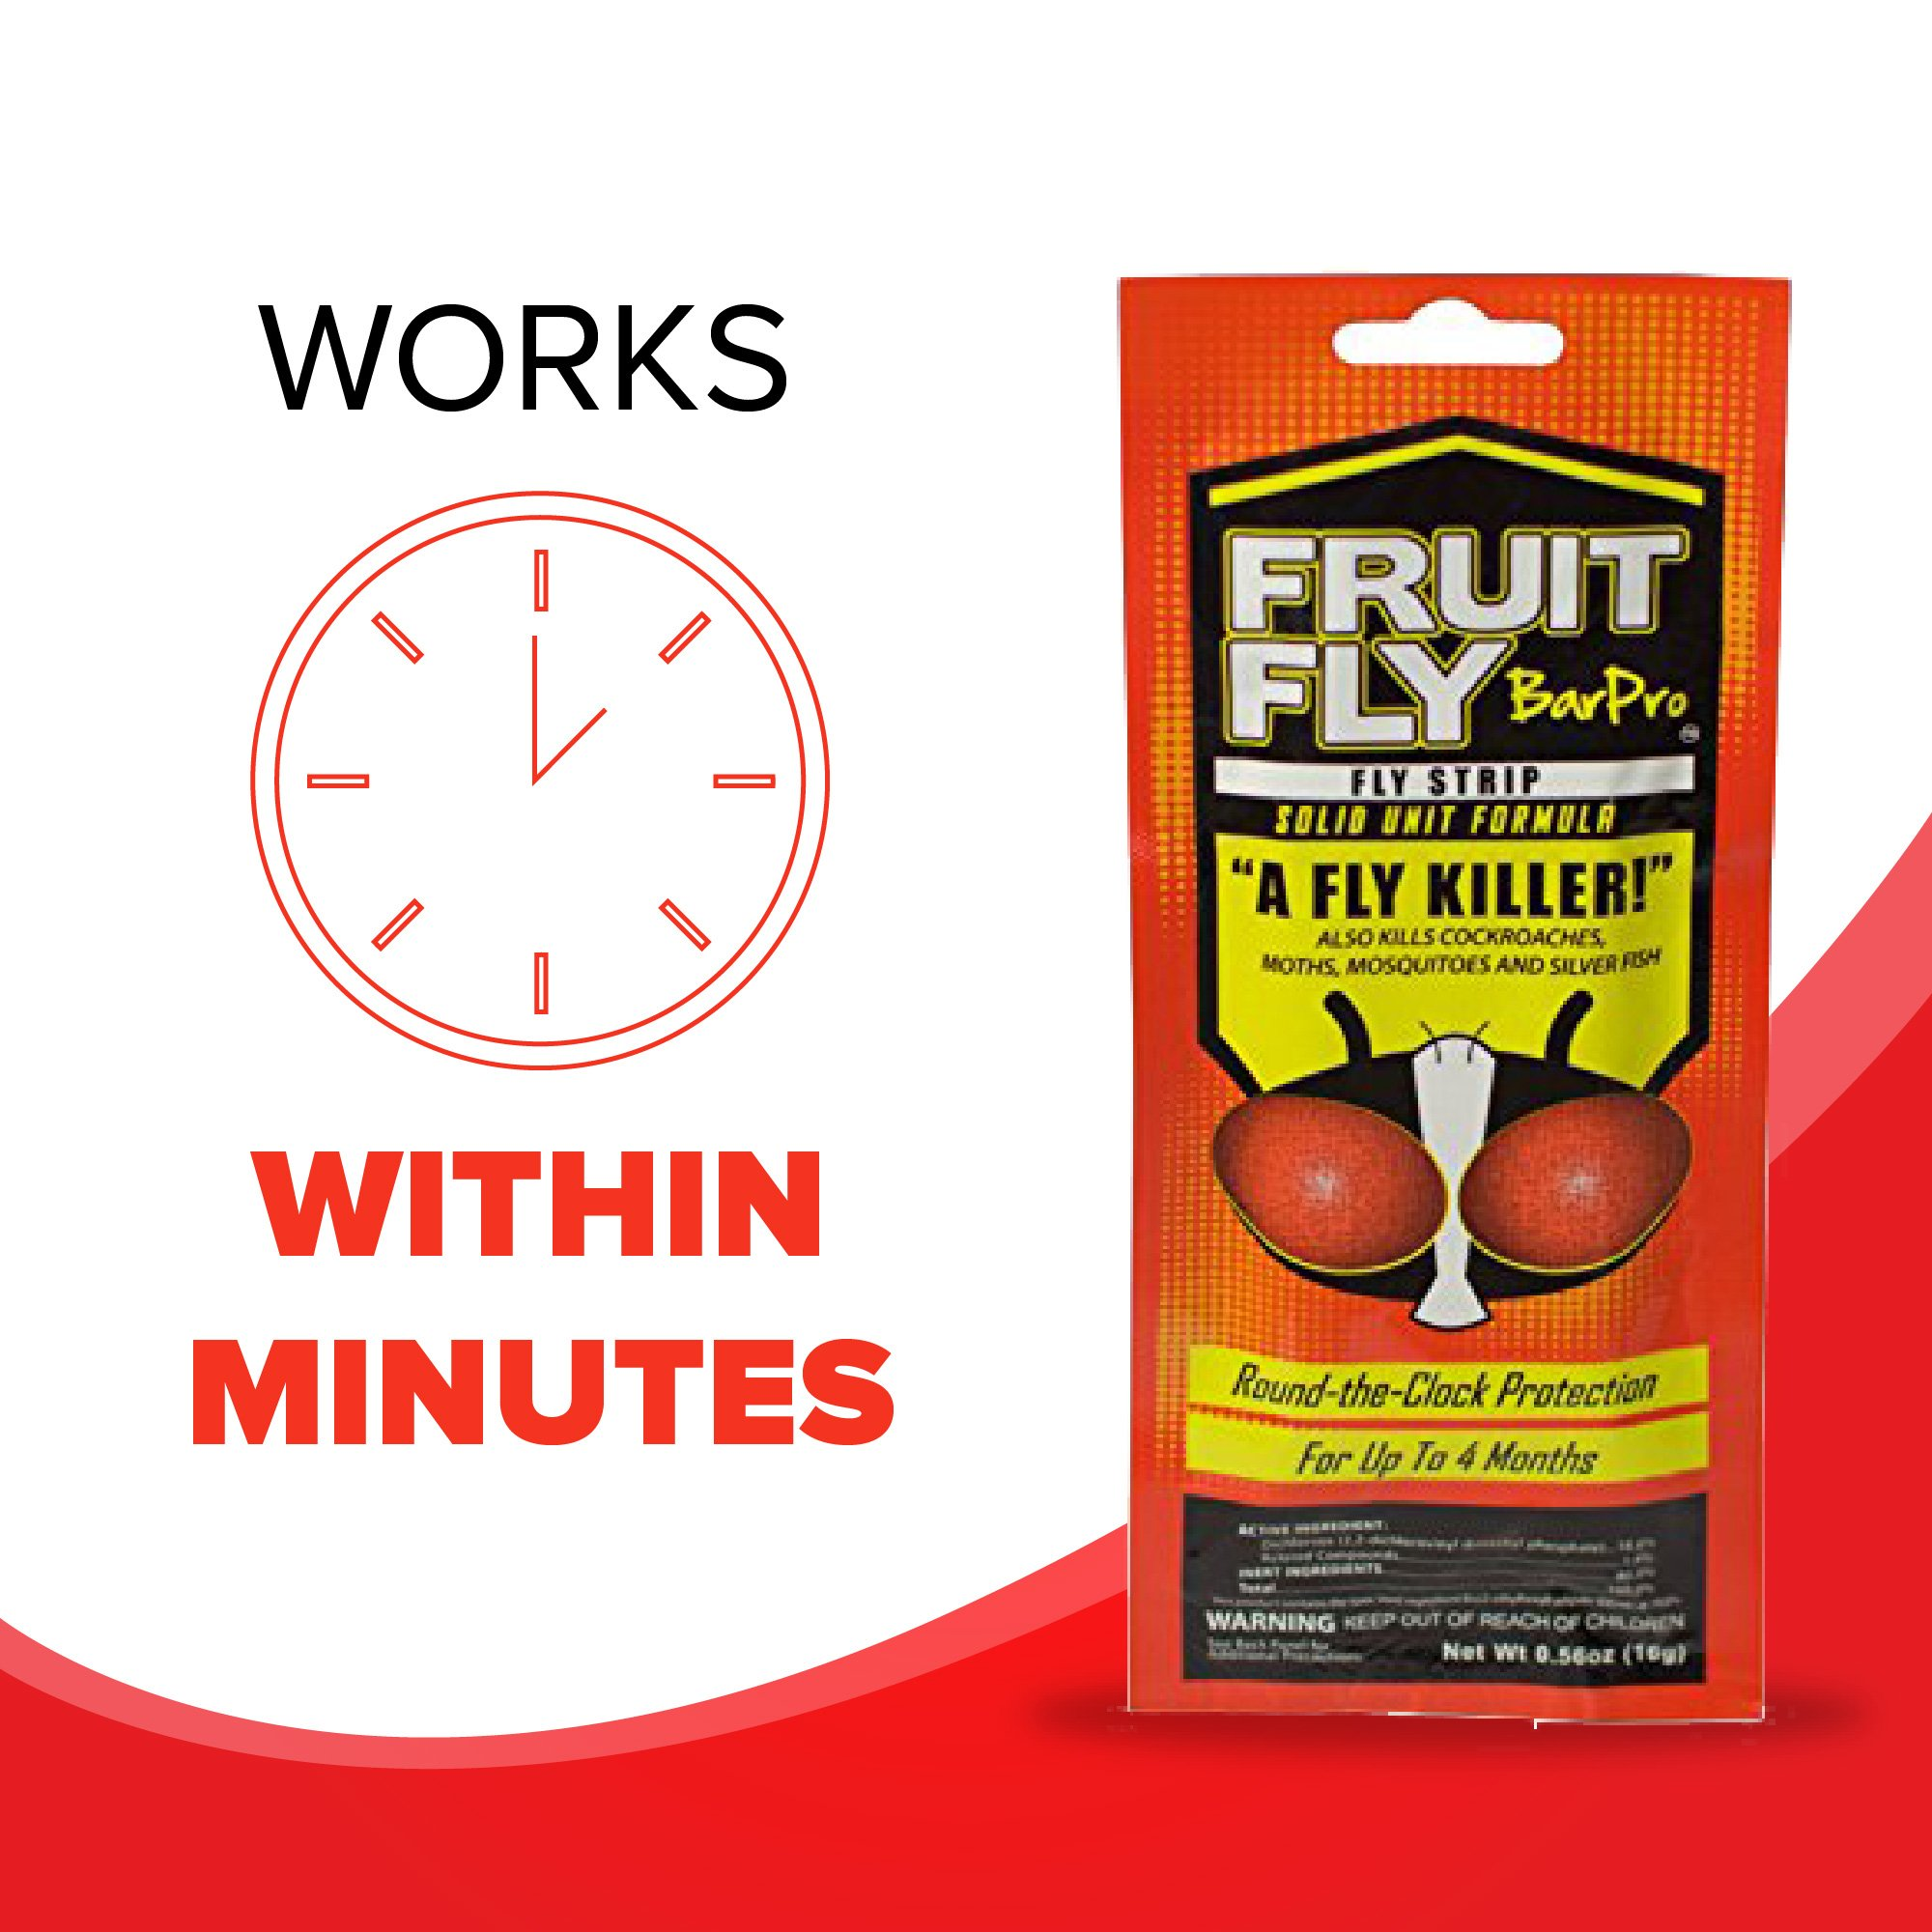 Fruit Fly BarPro Fly Strip – 4 Month Protection Against Flies, Cockroaches, Mosquitos & Other Pests – Portable for Indoor & Outdoor Use (5 Strips, Food Service Pack) by Fruit Fly BarPro (Image #7)